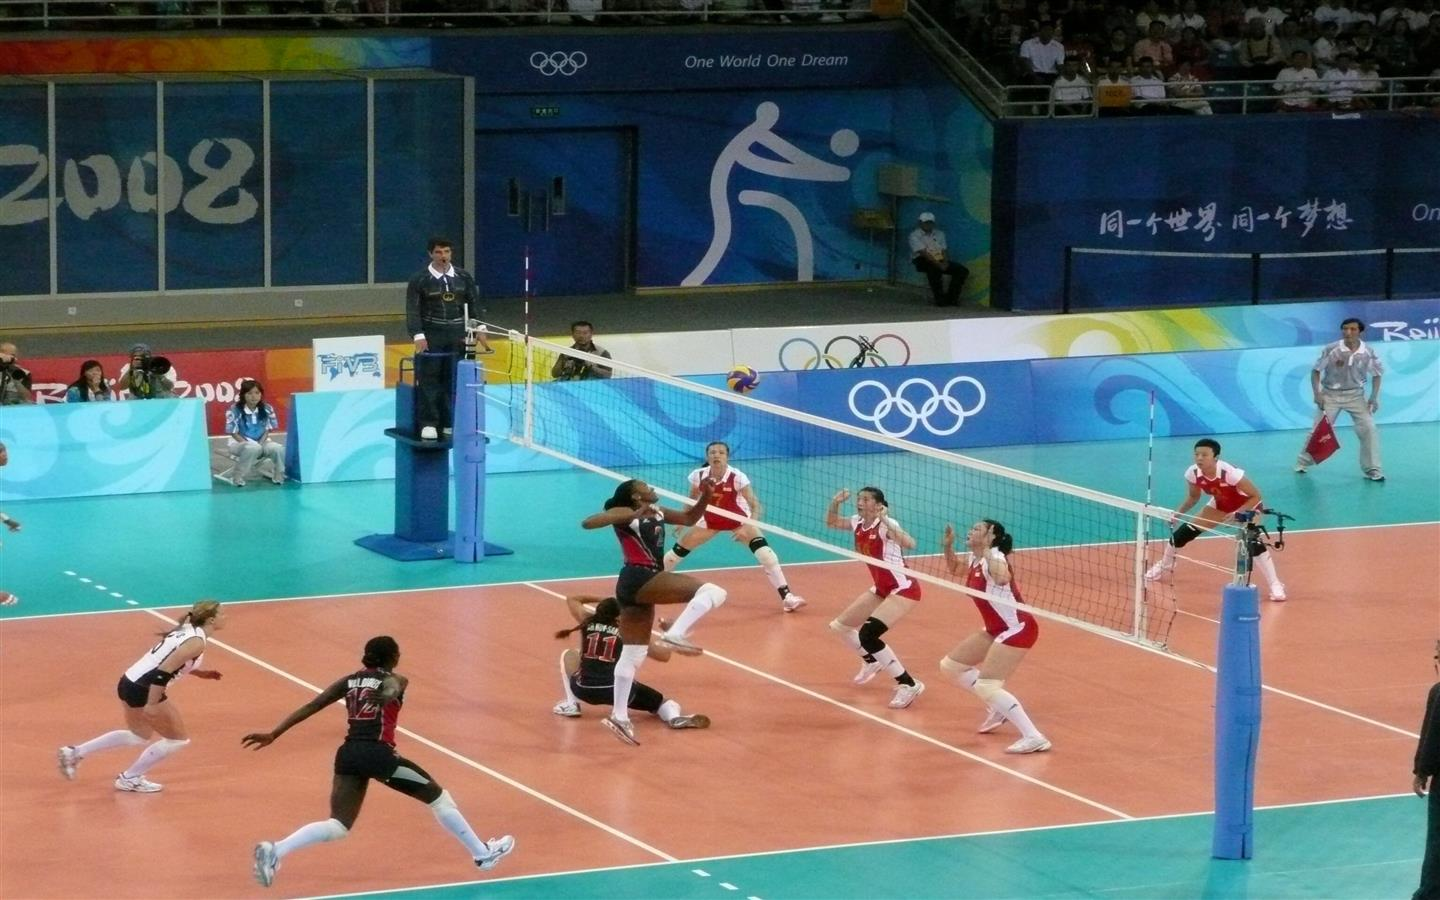 1440x900 Volleyball in China Olympics Wallpapers